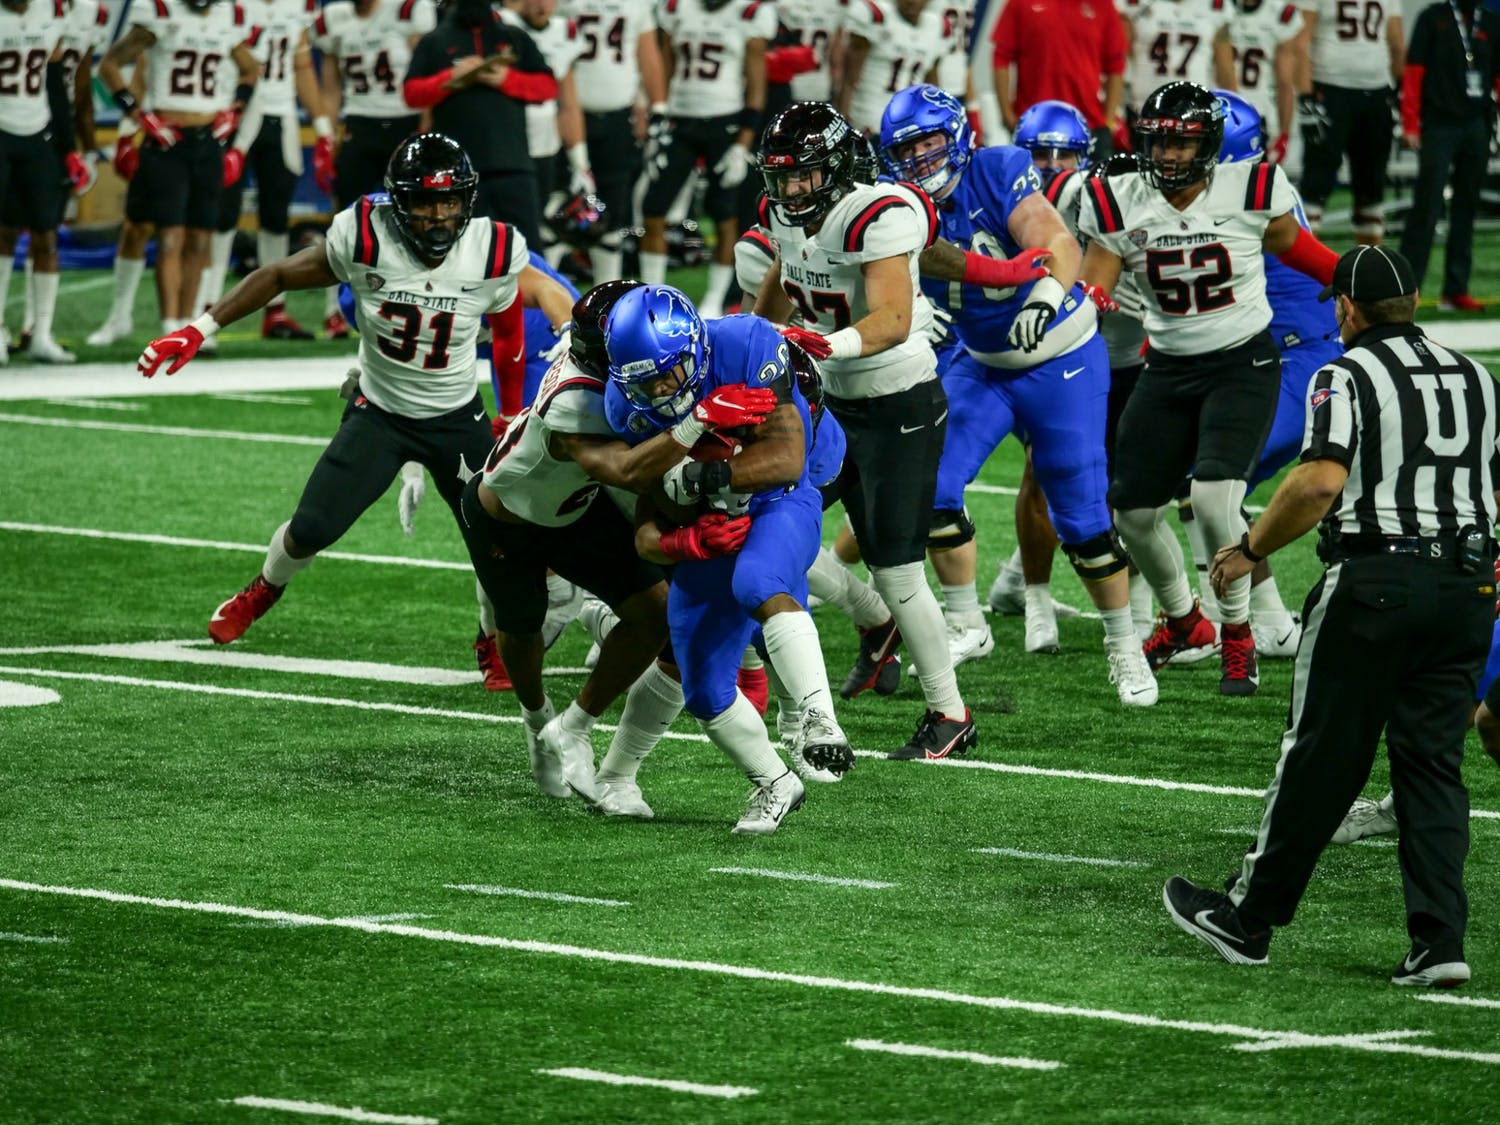 Junior running back Jaret Patterson rushes for a first down against Ball State in the MAC Championship Game.